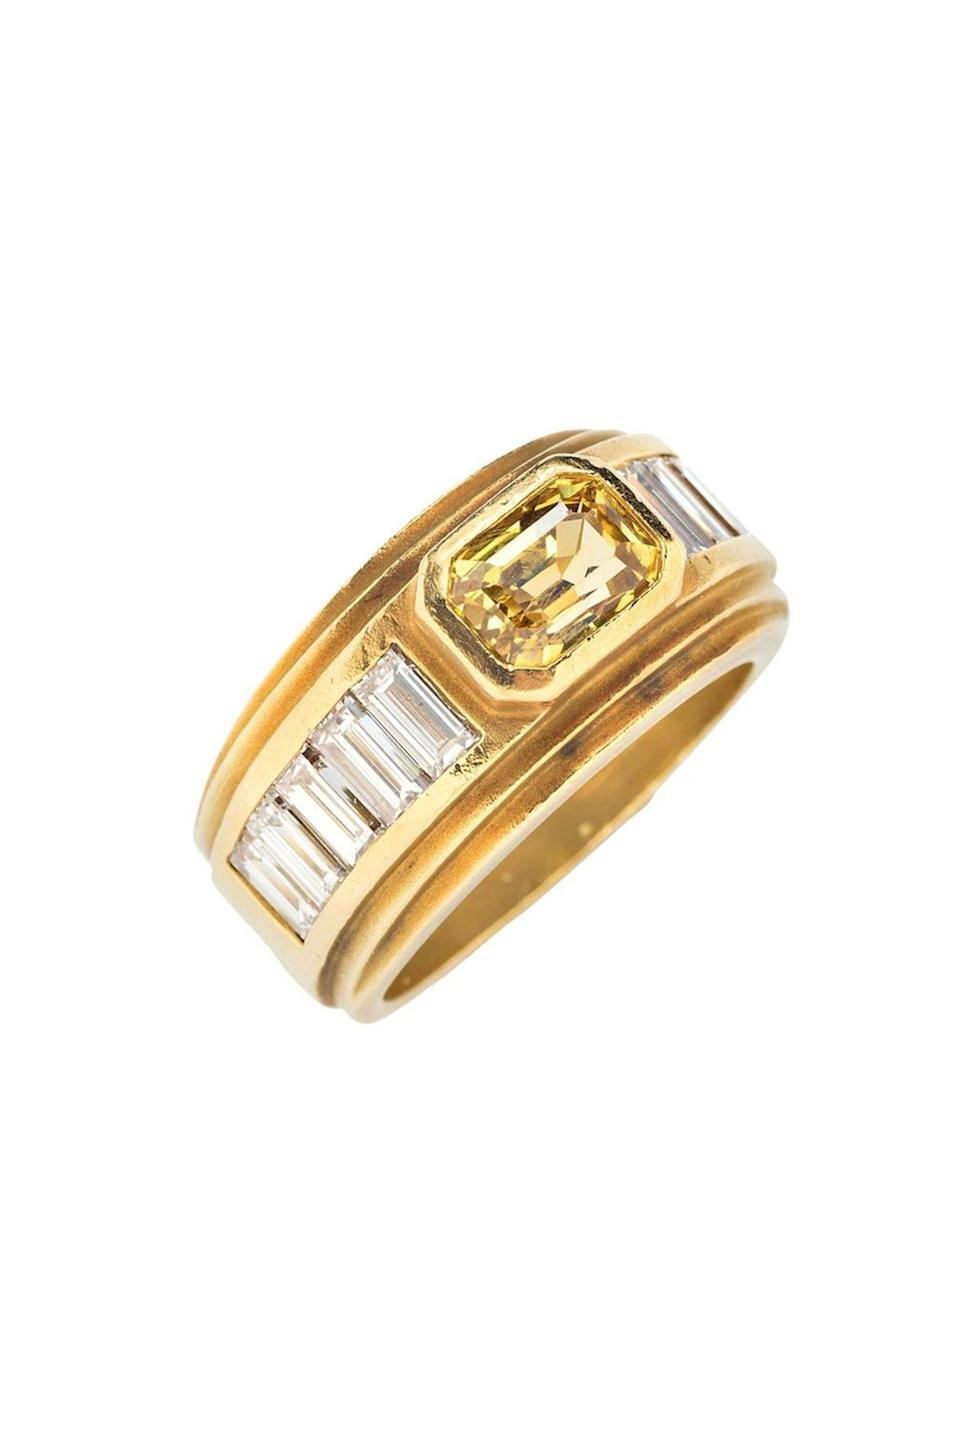 """<p><strong>Tiina Smith</strong></p><p>tiinasmithjewelry.com</p><p><strong>$7200.00</strong></p><p><a href=""""https://tiinasmithjewelry.com/products/kieselstein-cord-sapphire-diamond-ring?variant=33240126718038"""" rel=""""nofollow noopener"""" target=""""_blank"""" data-ylk=""""slk:Shop Now"""" class=""""link rapid-noclick-resp"""">Shop Now</a></p><p>Vintage rings like this '90s sapphire and diamond are a simple way to search for a one-of-a-kind piece. Bonus, buying vintage also ensures maximum sustainability. </p>"""